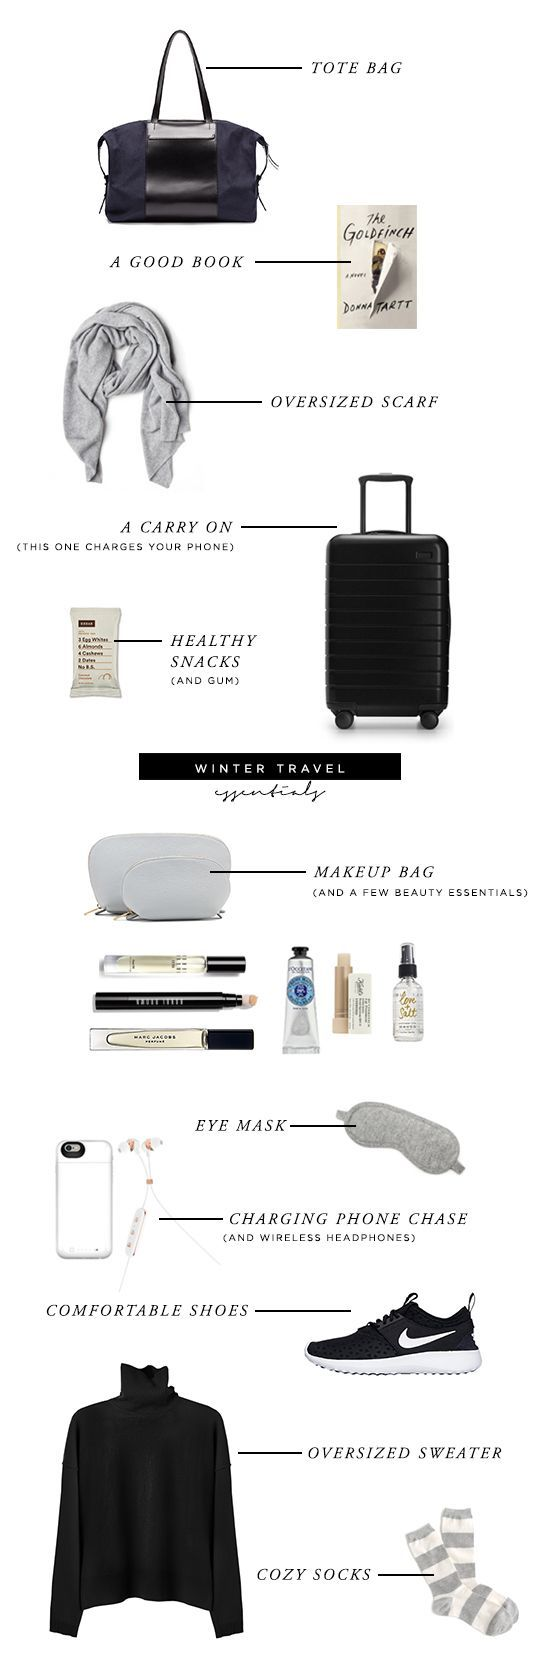 Winter Travel Essentials for a Long Flight